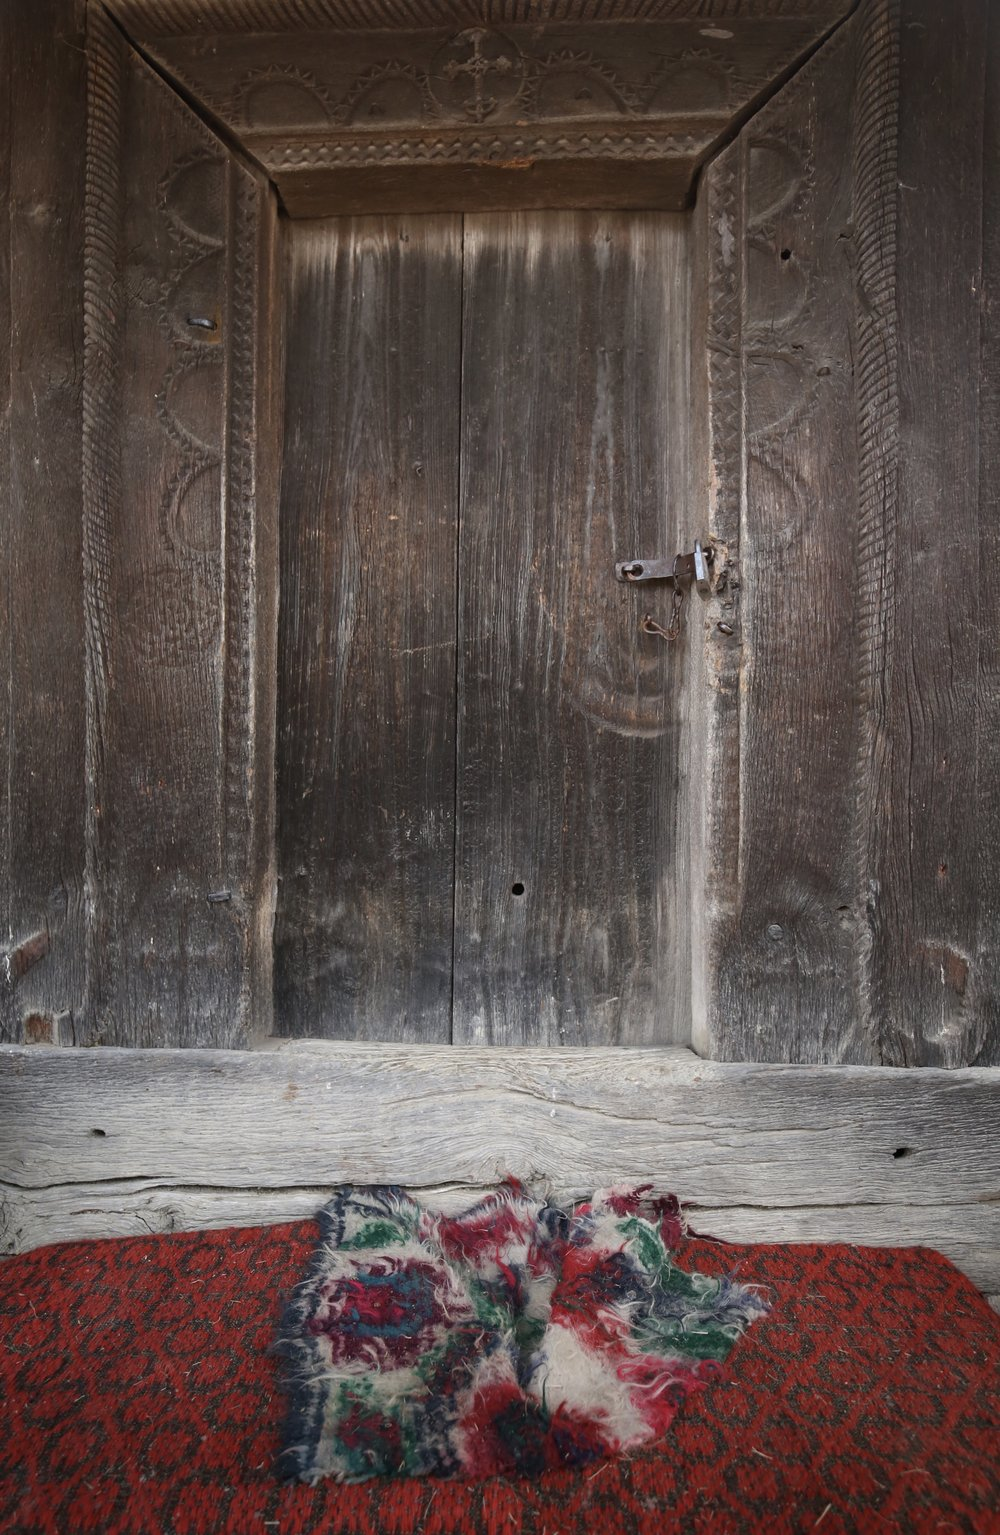 A red carpet in front of a small wooden door, Romania.